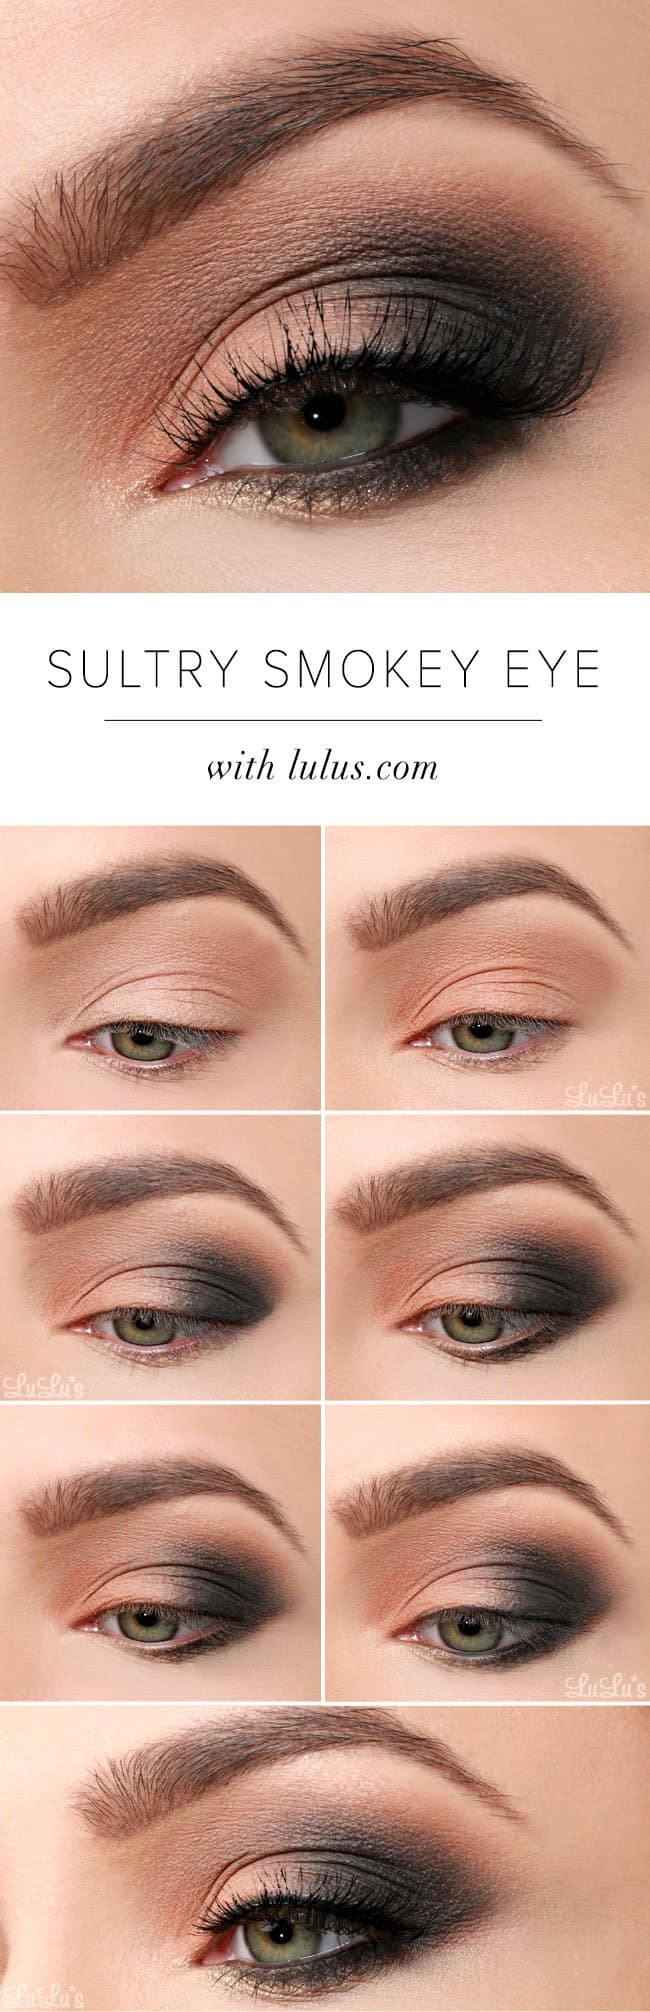 15 smokey eye tutorials - step by step guide to perfect